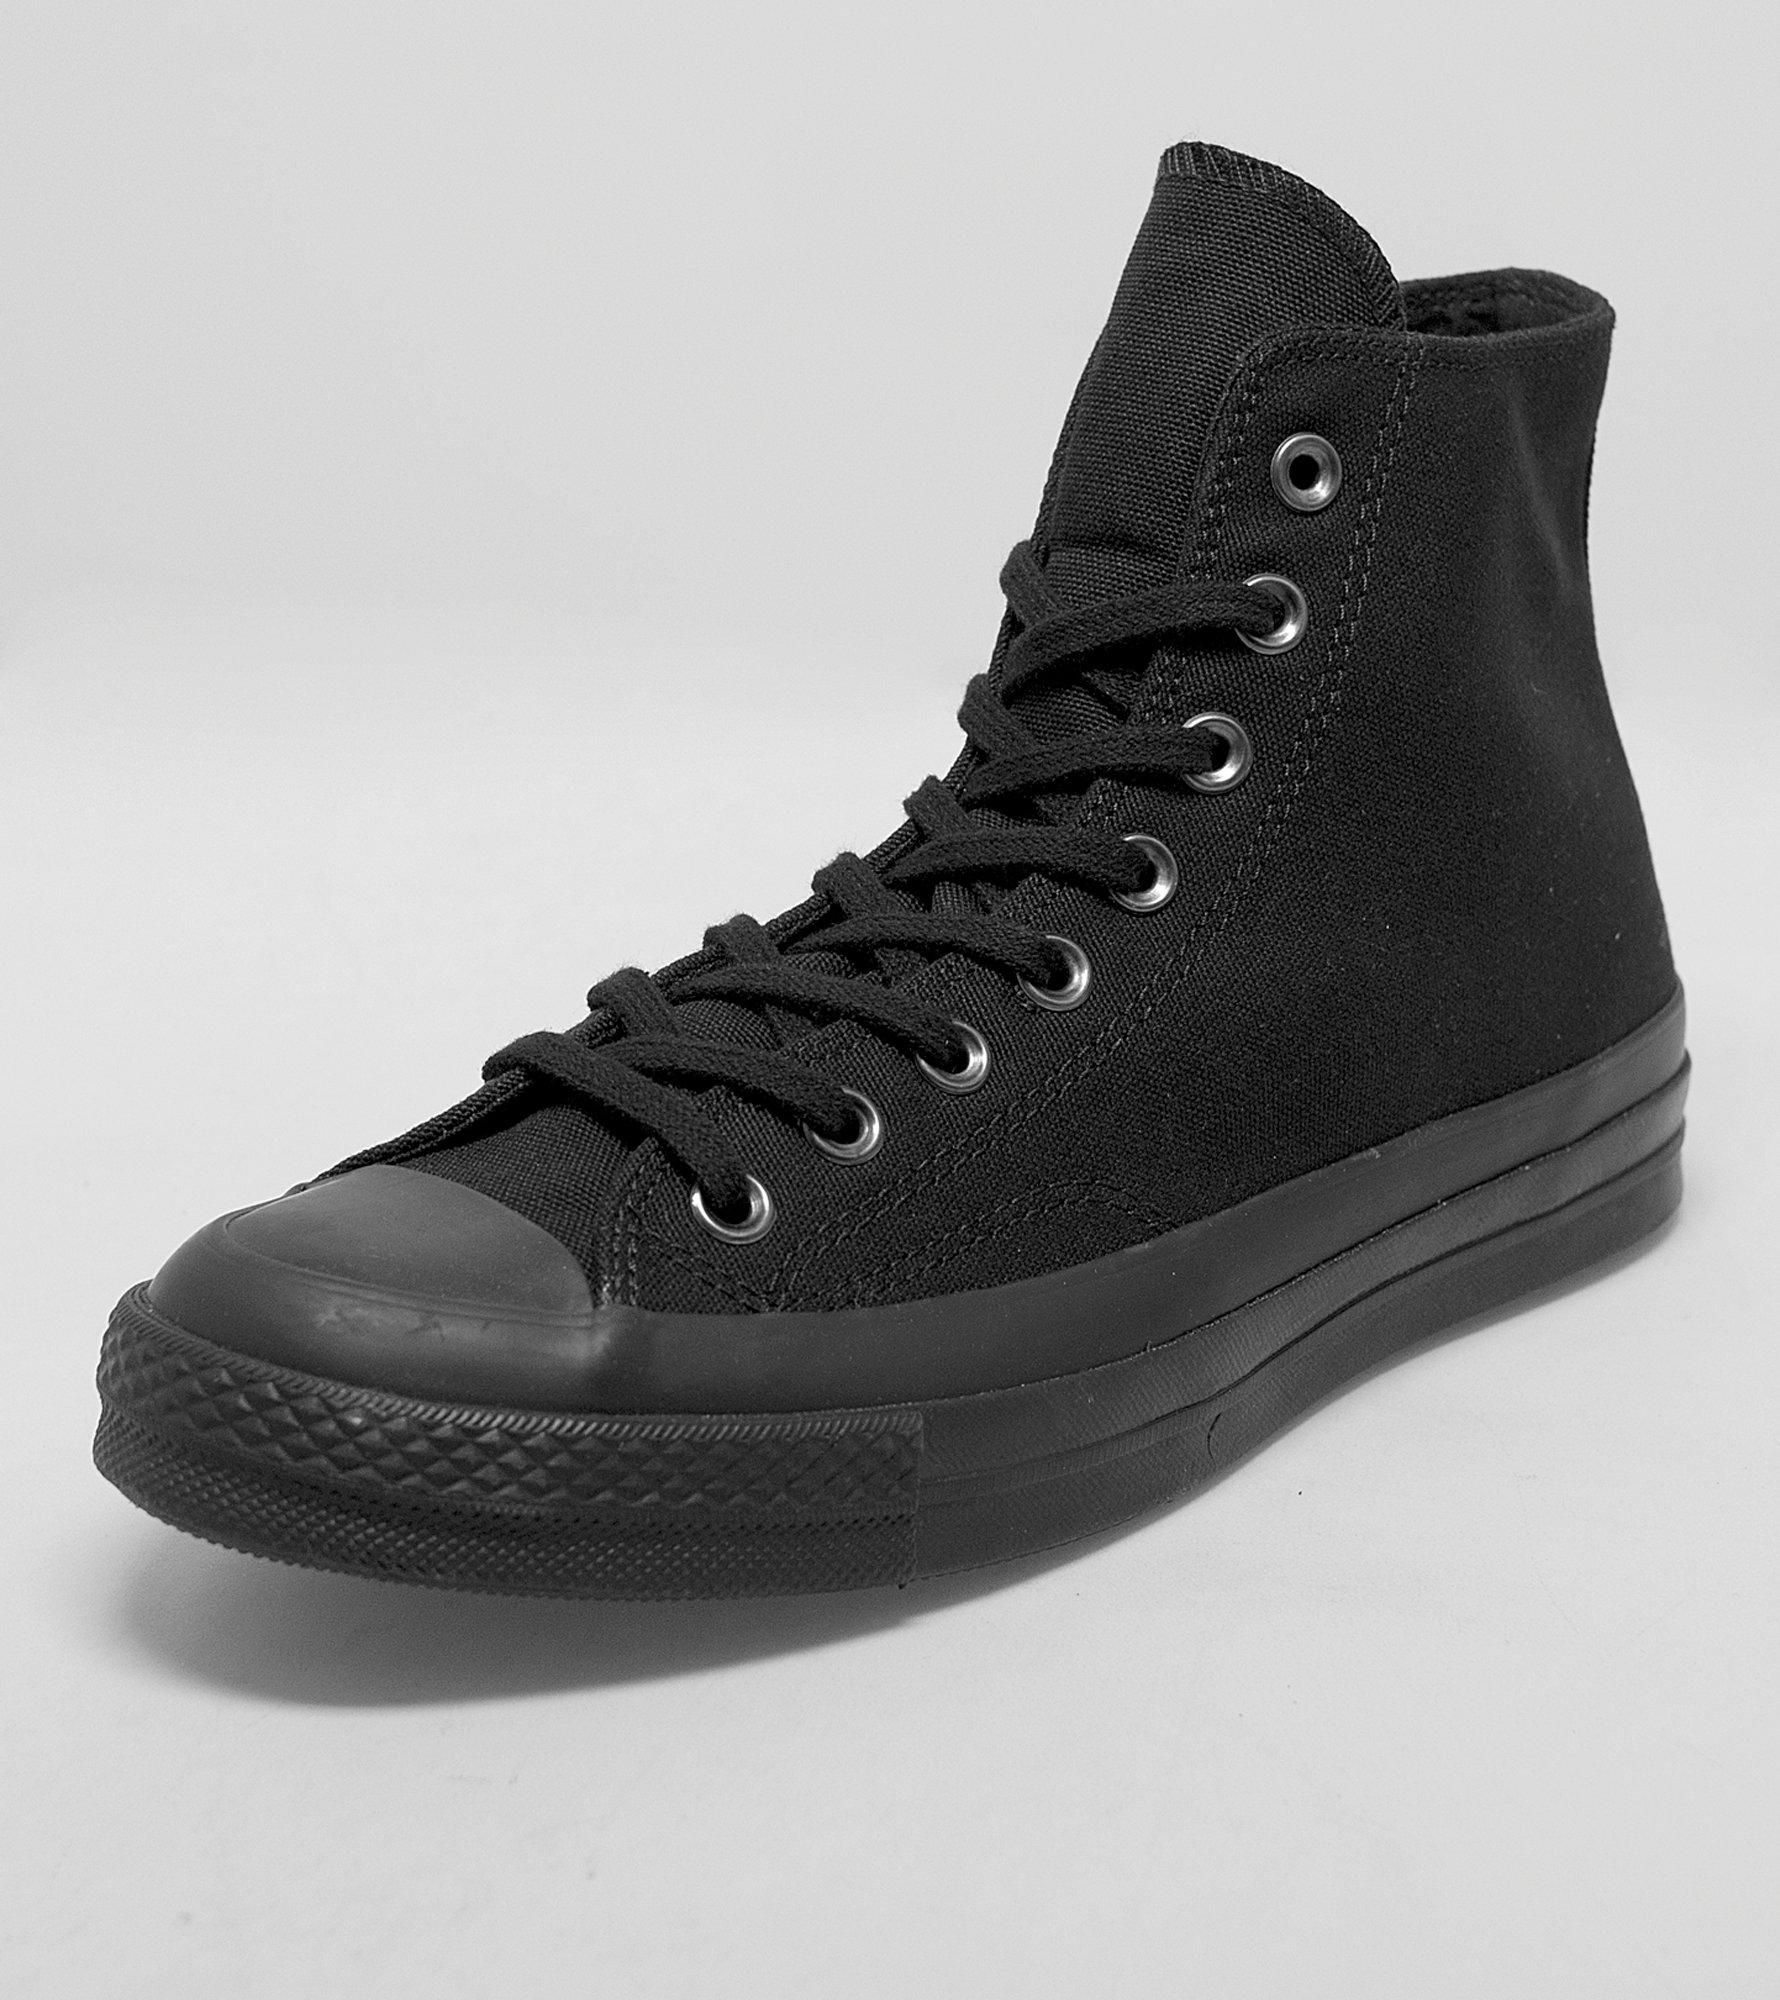 aaa6a3ef84 Acquista converse taylor chuck 2016 - OFF67% sconti